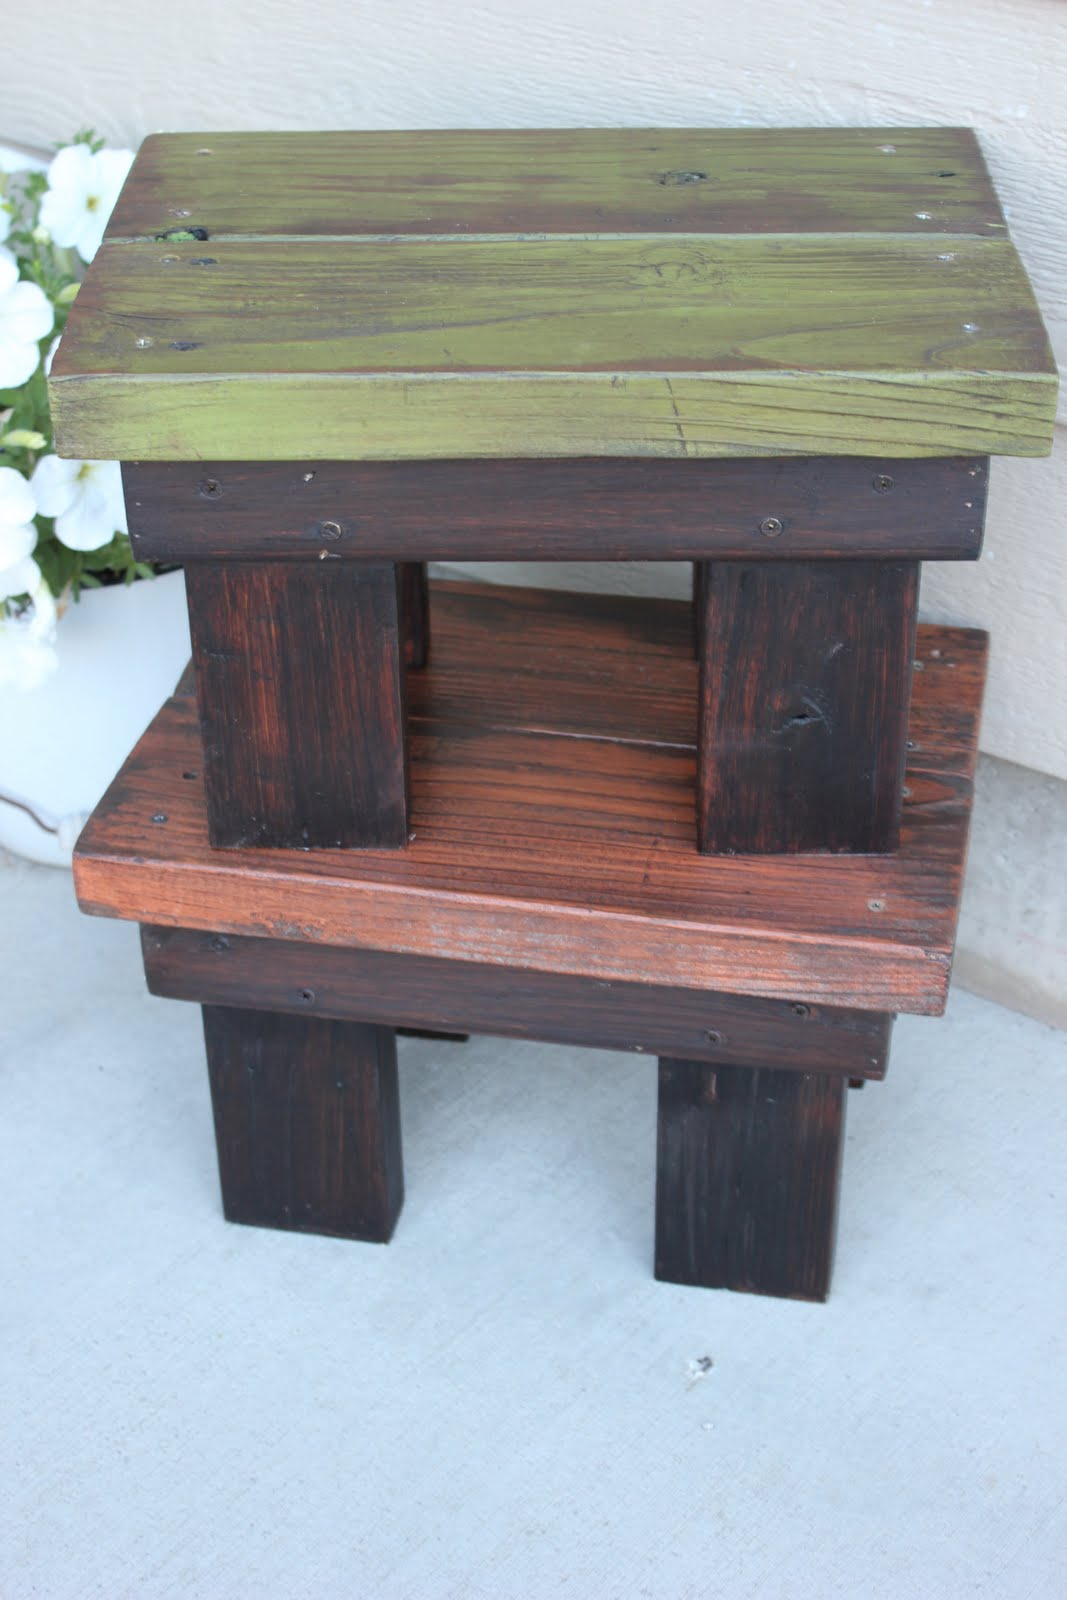 Reclaimed Wood Stool Tutorial Bec4 Beyondthepicketfenceblogspot